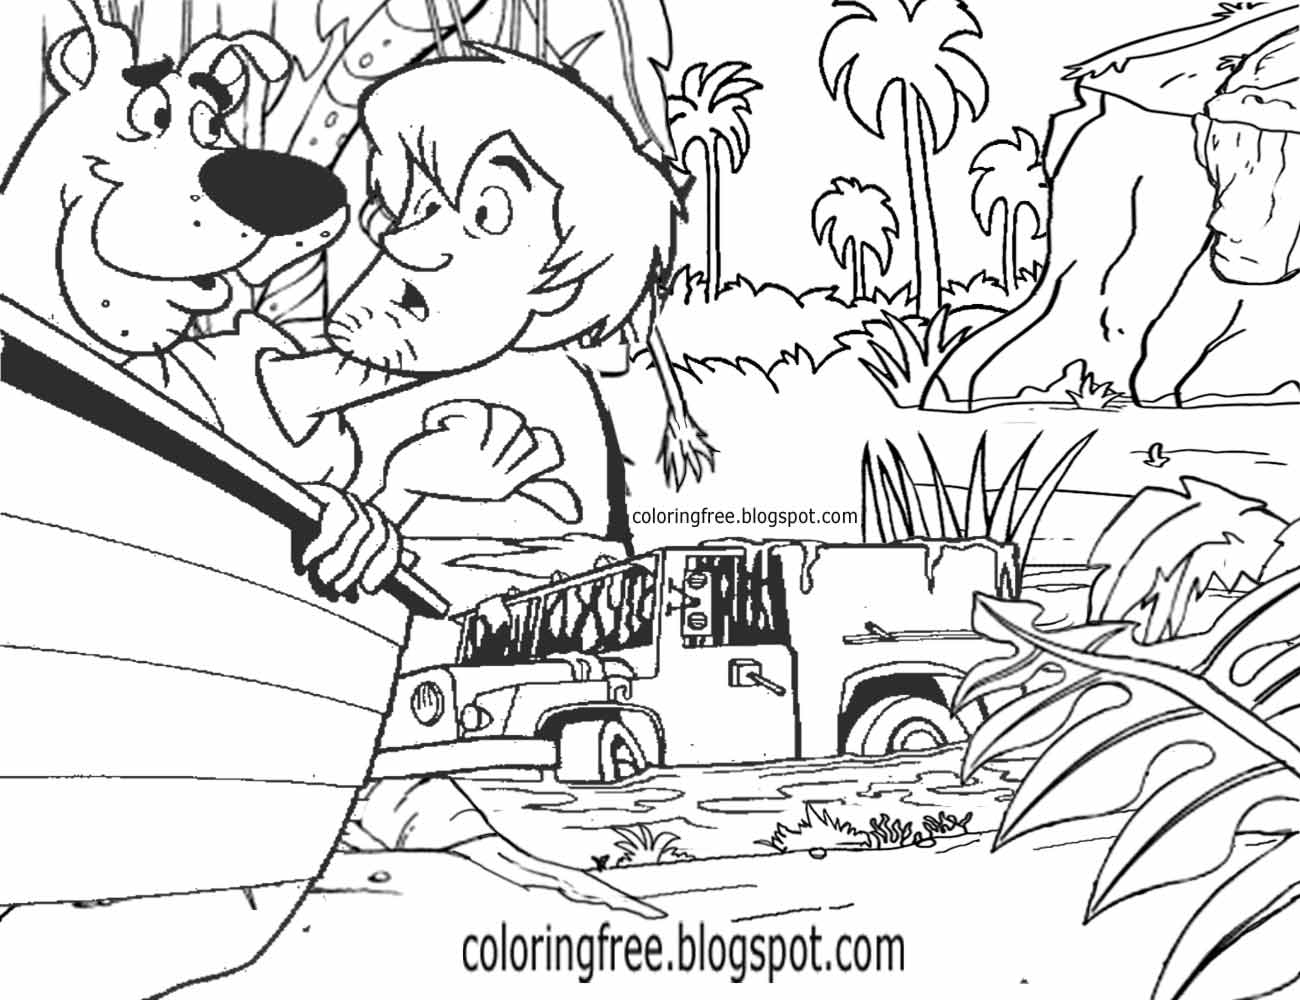 Bleak Quagmire Shaggy Scooby Doo Drawing Swap Monster Coloring Book Pages Haunted Ghostly Marshland